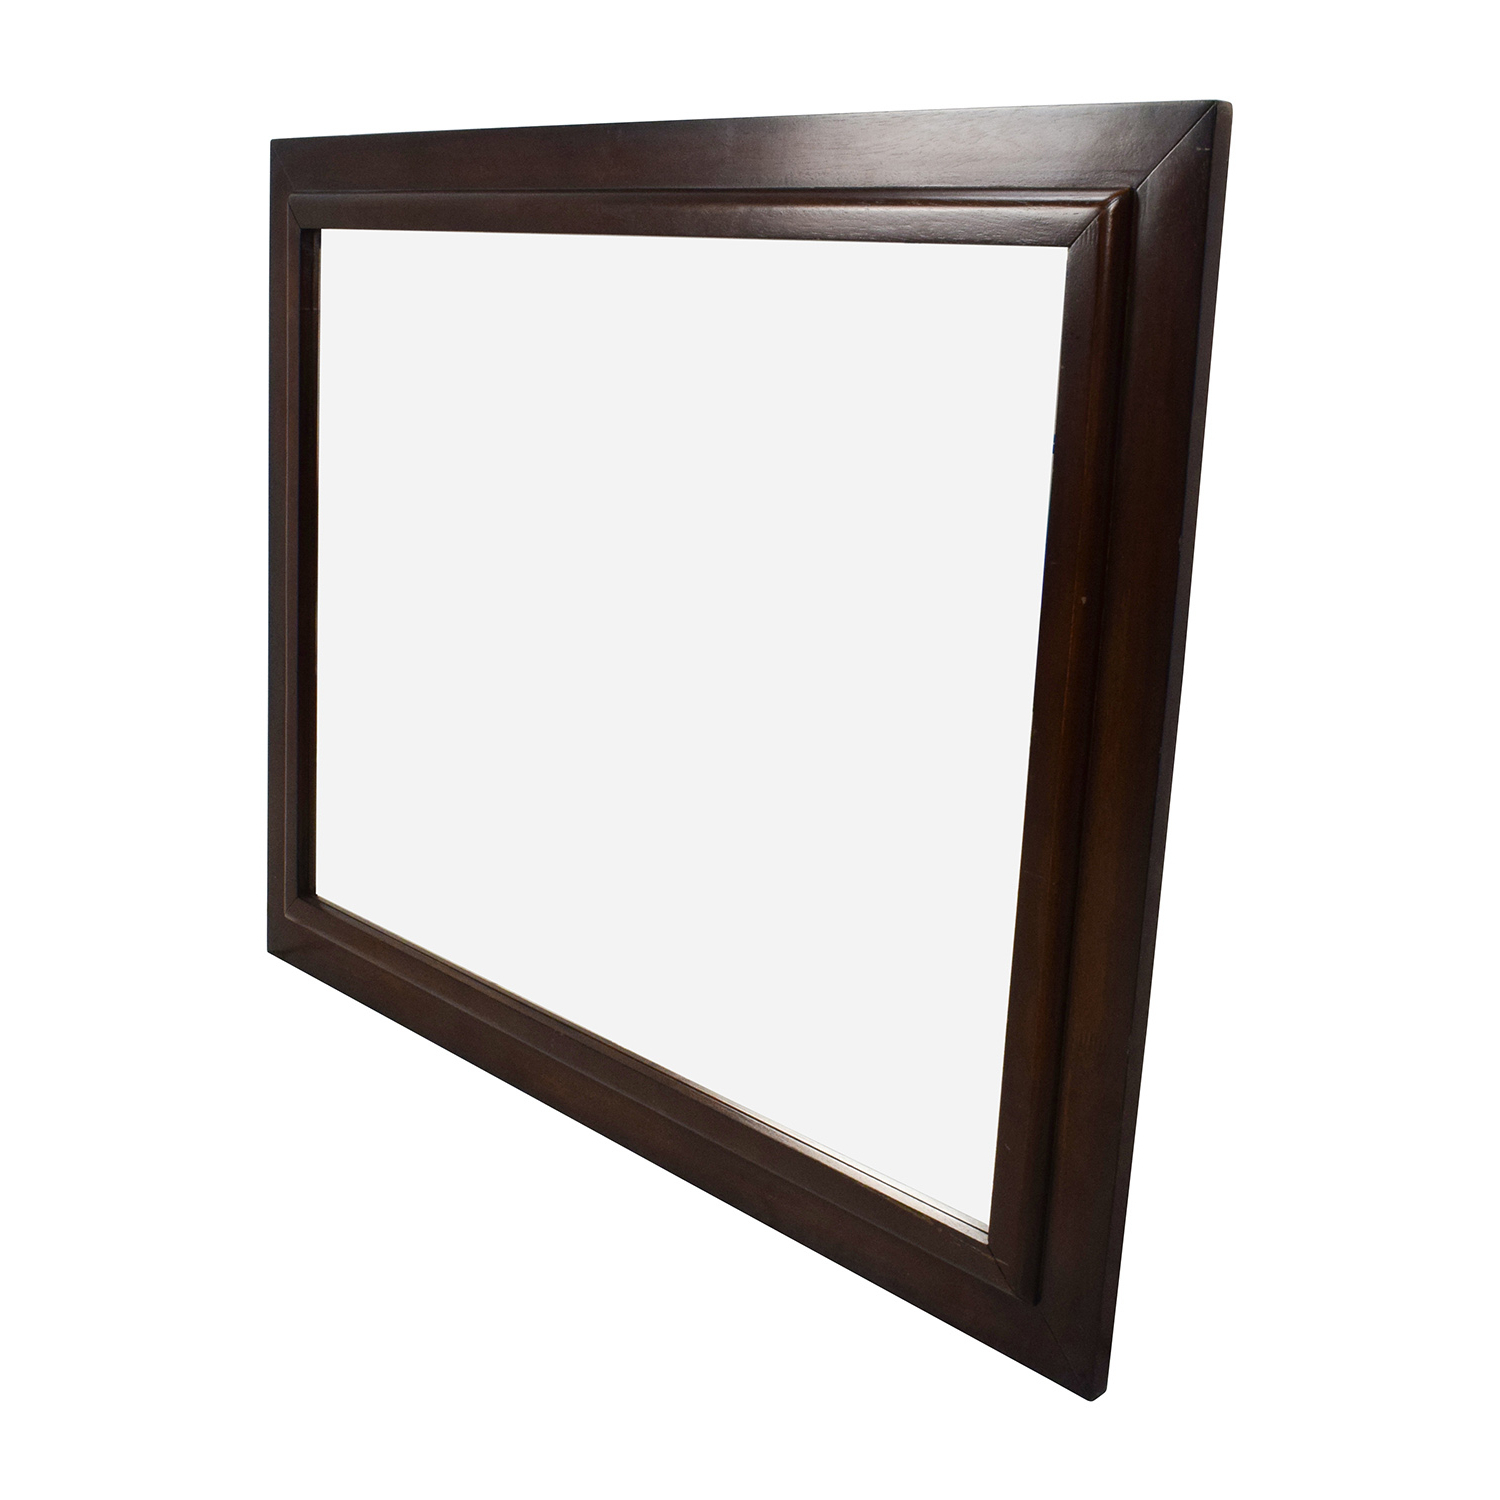 [%80% Off – Large Square Wood Framed Wall Mirror / Decor With Famous Brown Wall Mirrors|brown Wall Mirrors Inside 2019 80% Off – Large Square Wood Framed Wall Mirror / Decor|well Known Brown Wall Mirrors Within 80% Off – Large Square Wood Framed Wall Mirror / Decor|latest 80% Off – Large Square Wood Framed Wall Mirror / Decor Within Brown Wall Mirrors%] (View 8 of 20)